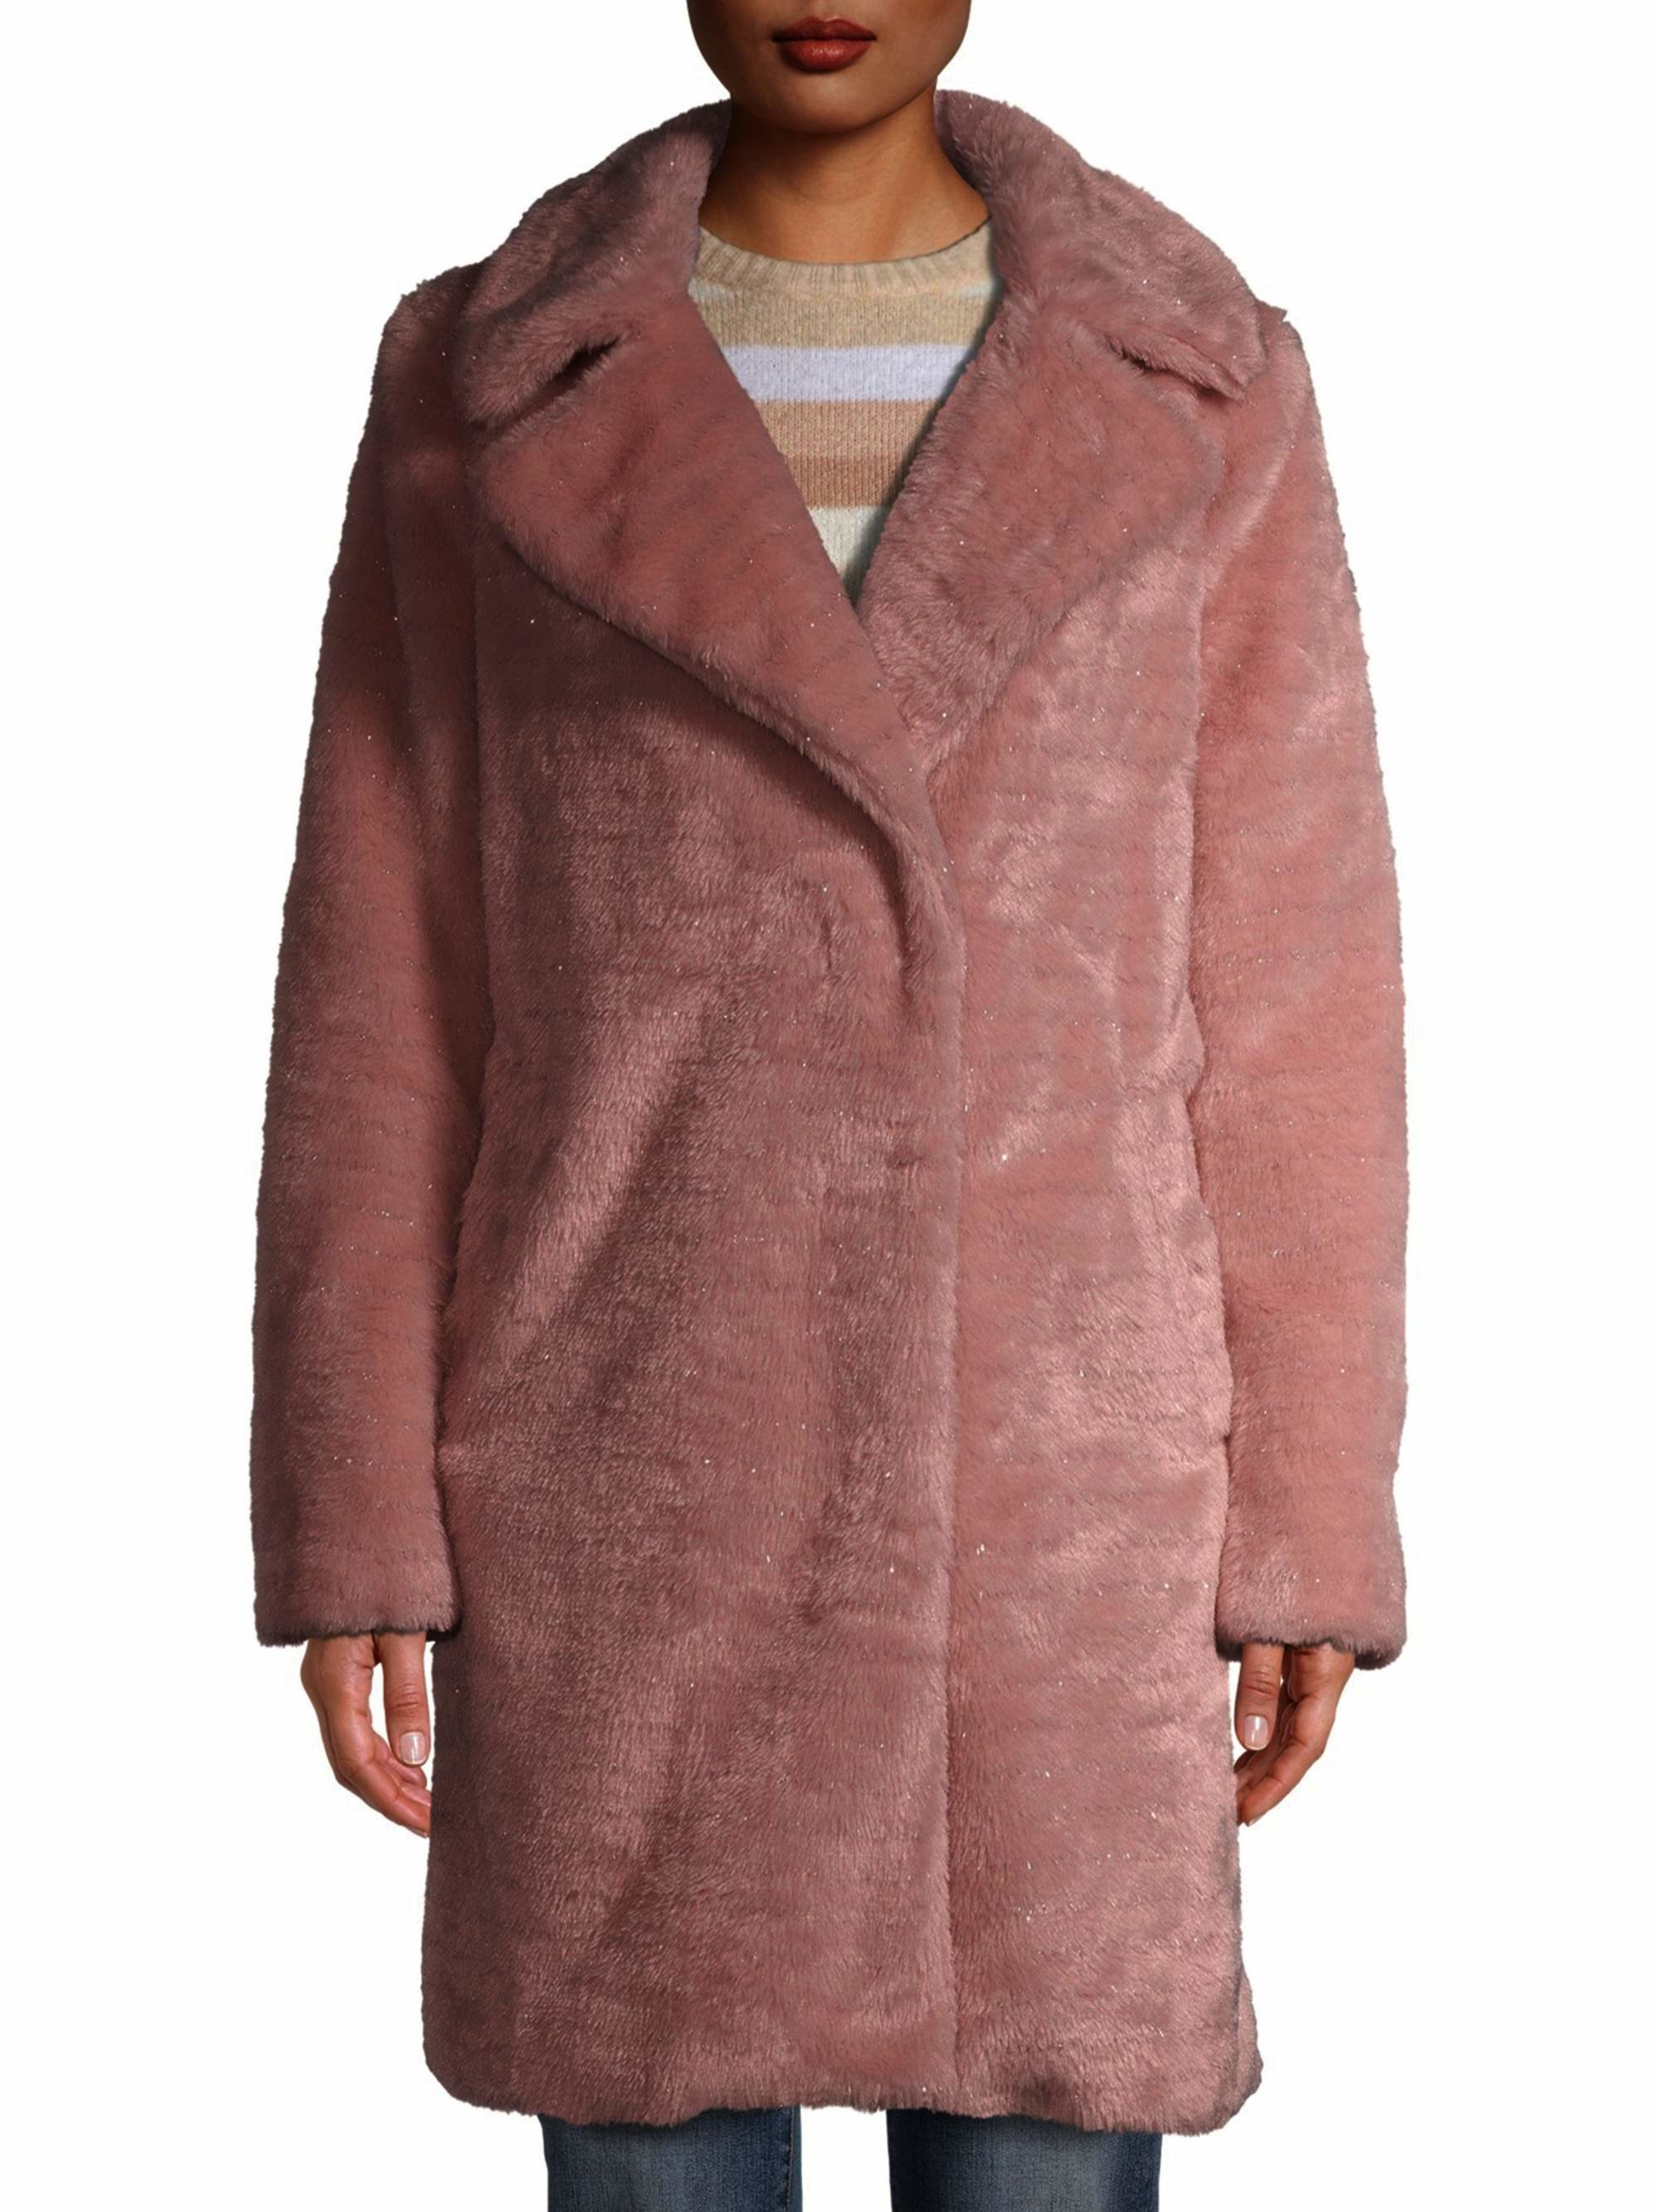 A model wearing the pink coat